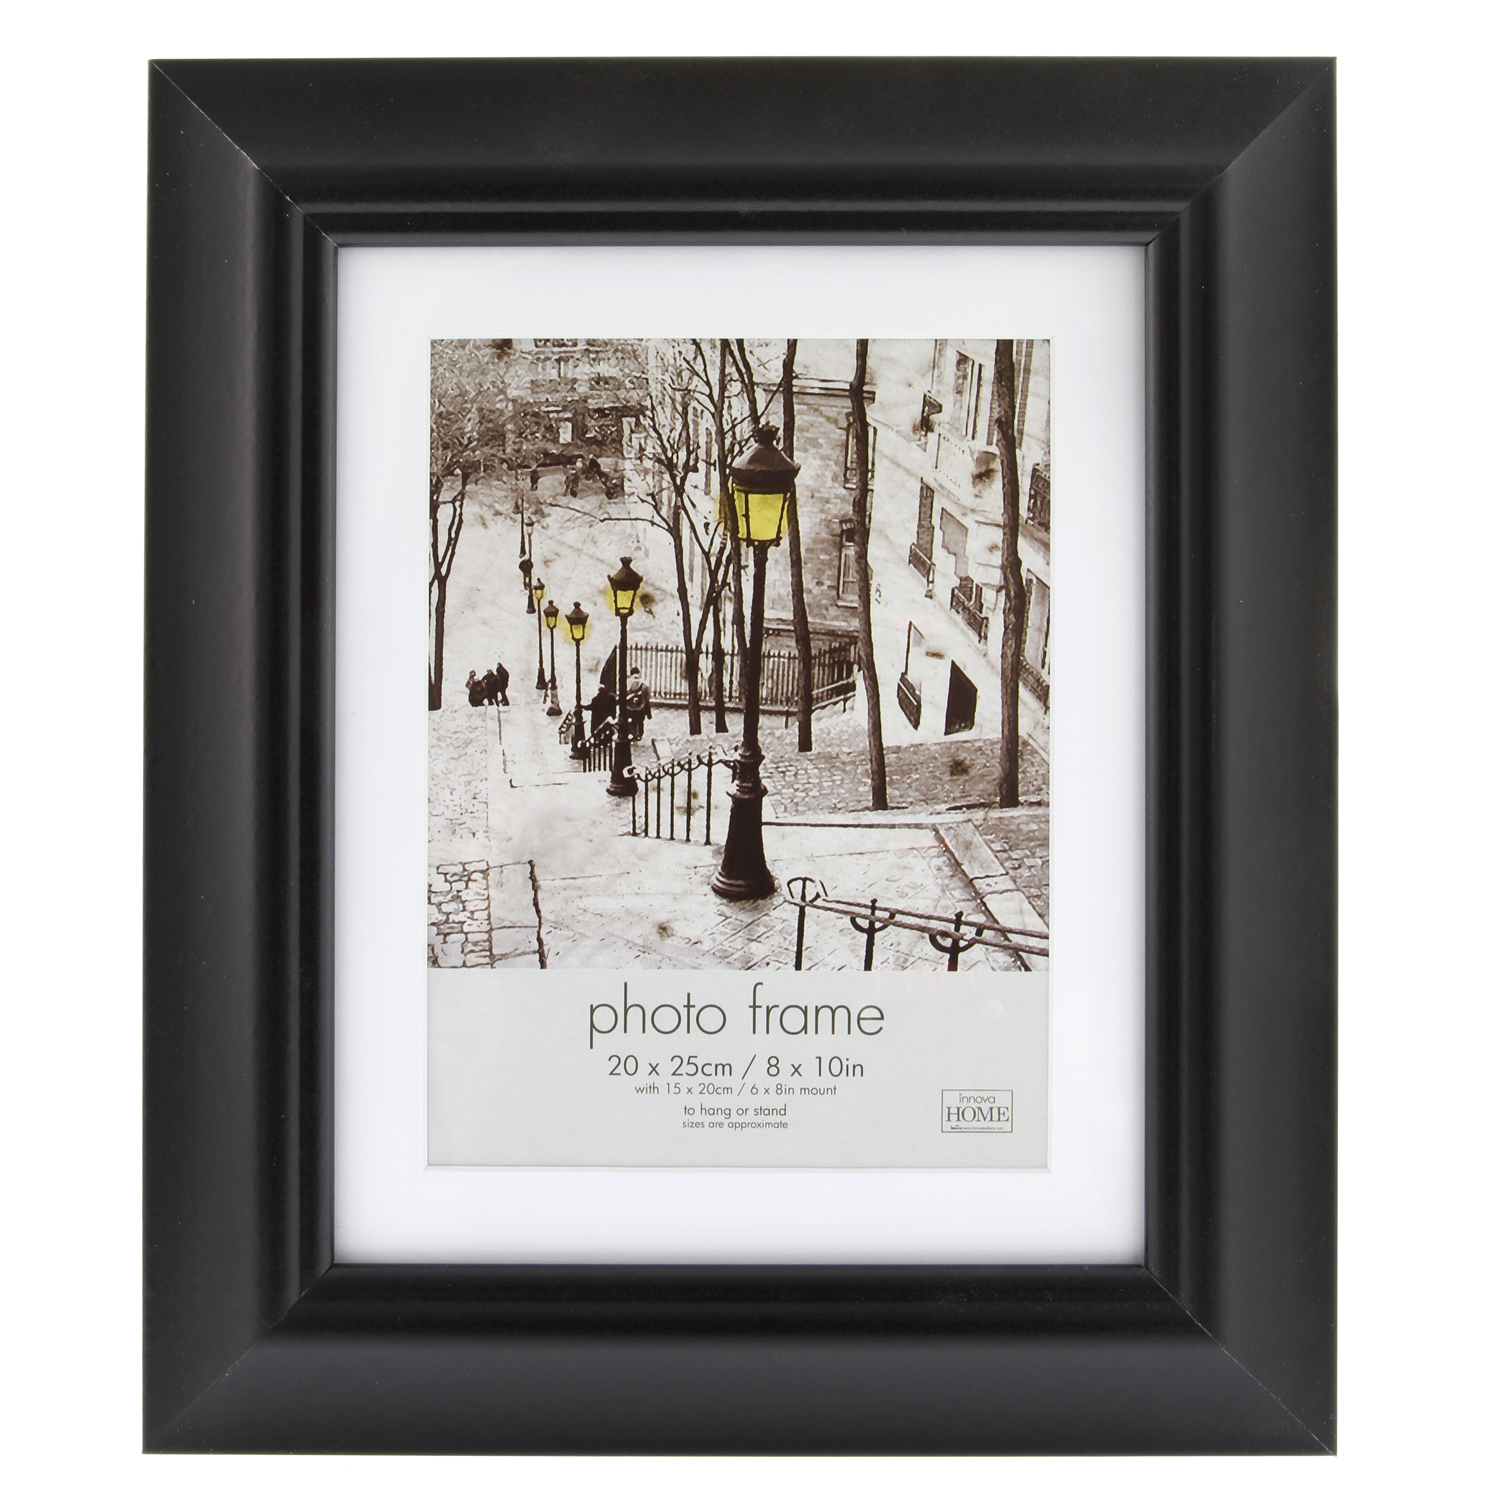 Simply Black Photo Frame 6 X 8 Home Store More